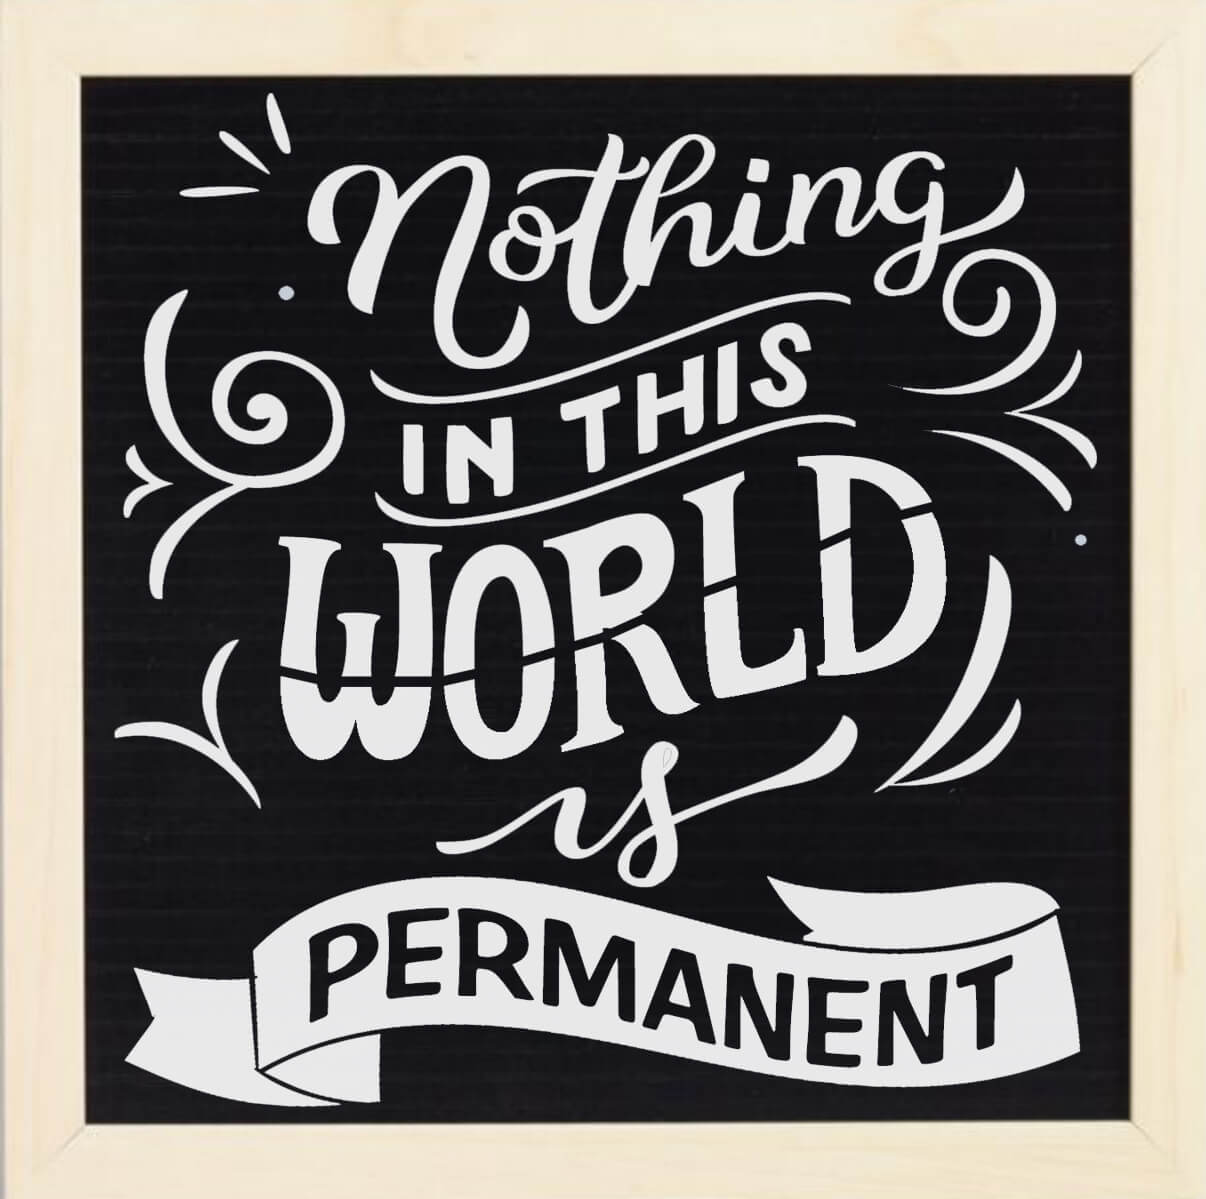 Free Nothing in this World SVG File